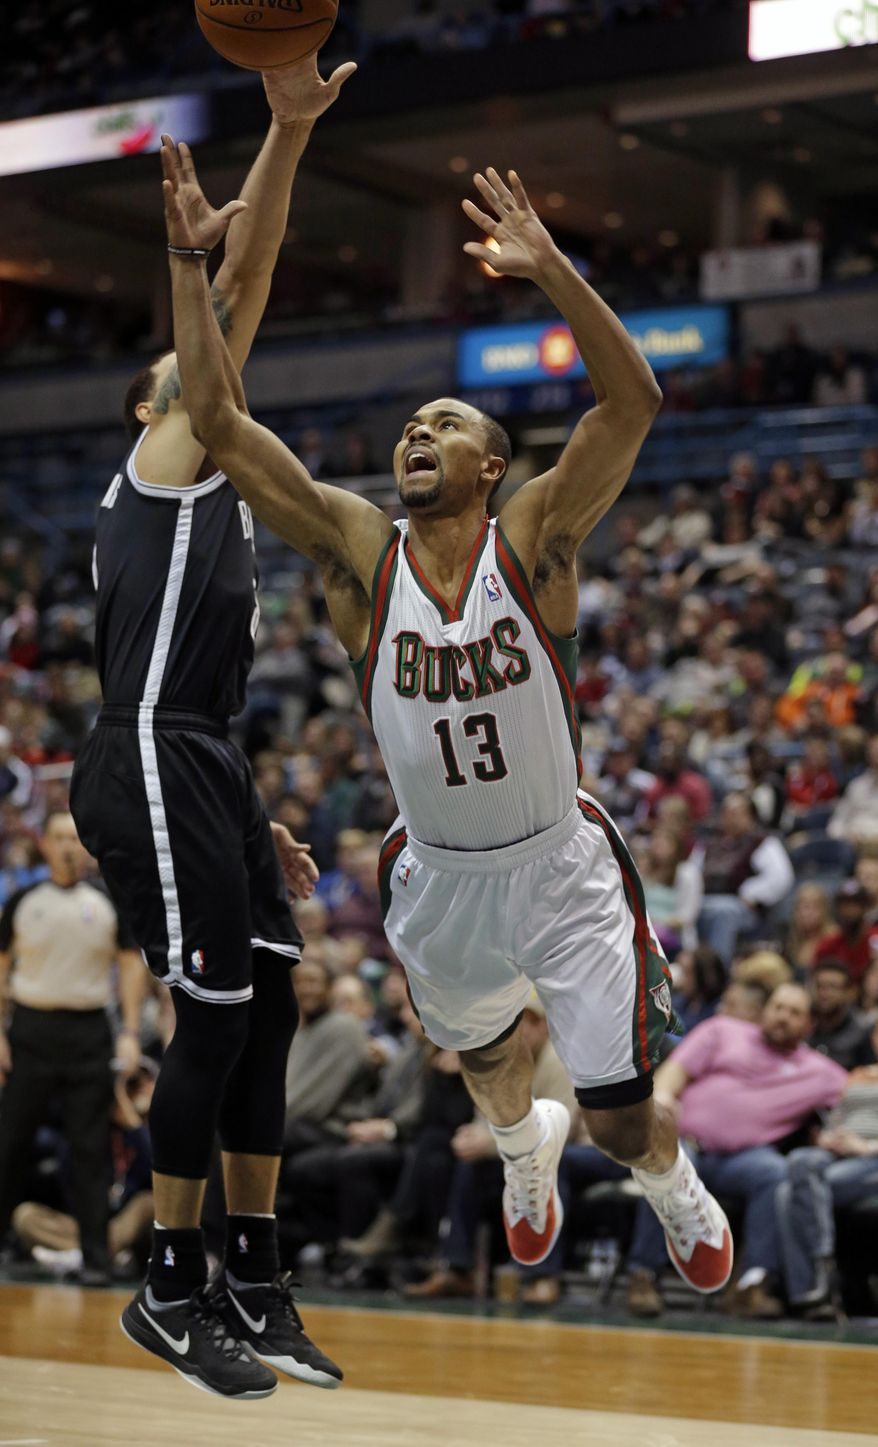 Milwaukee Bucks' Ramon Sessions (13) looses the ball against Brooklyn Nets' Deron Williams in the second half of an NBA basketball game Saturday, March 1, 2014, in Milwaukee. (AP Photo/Jeffrey Phelps)